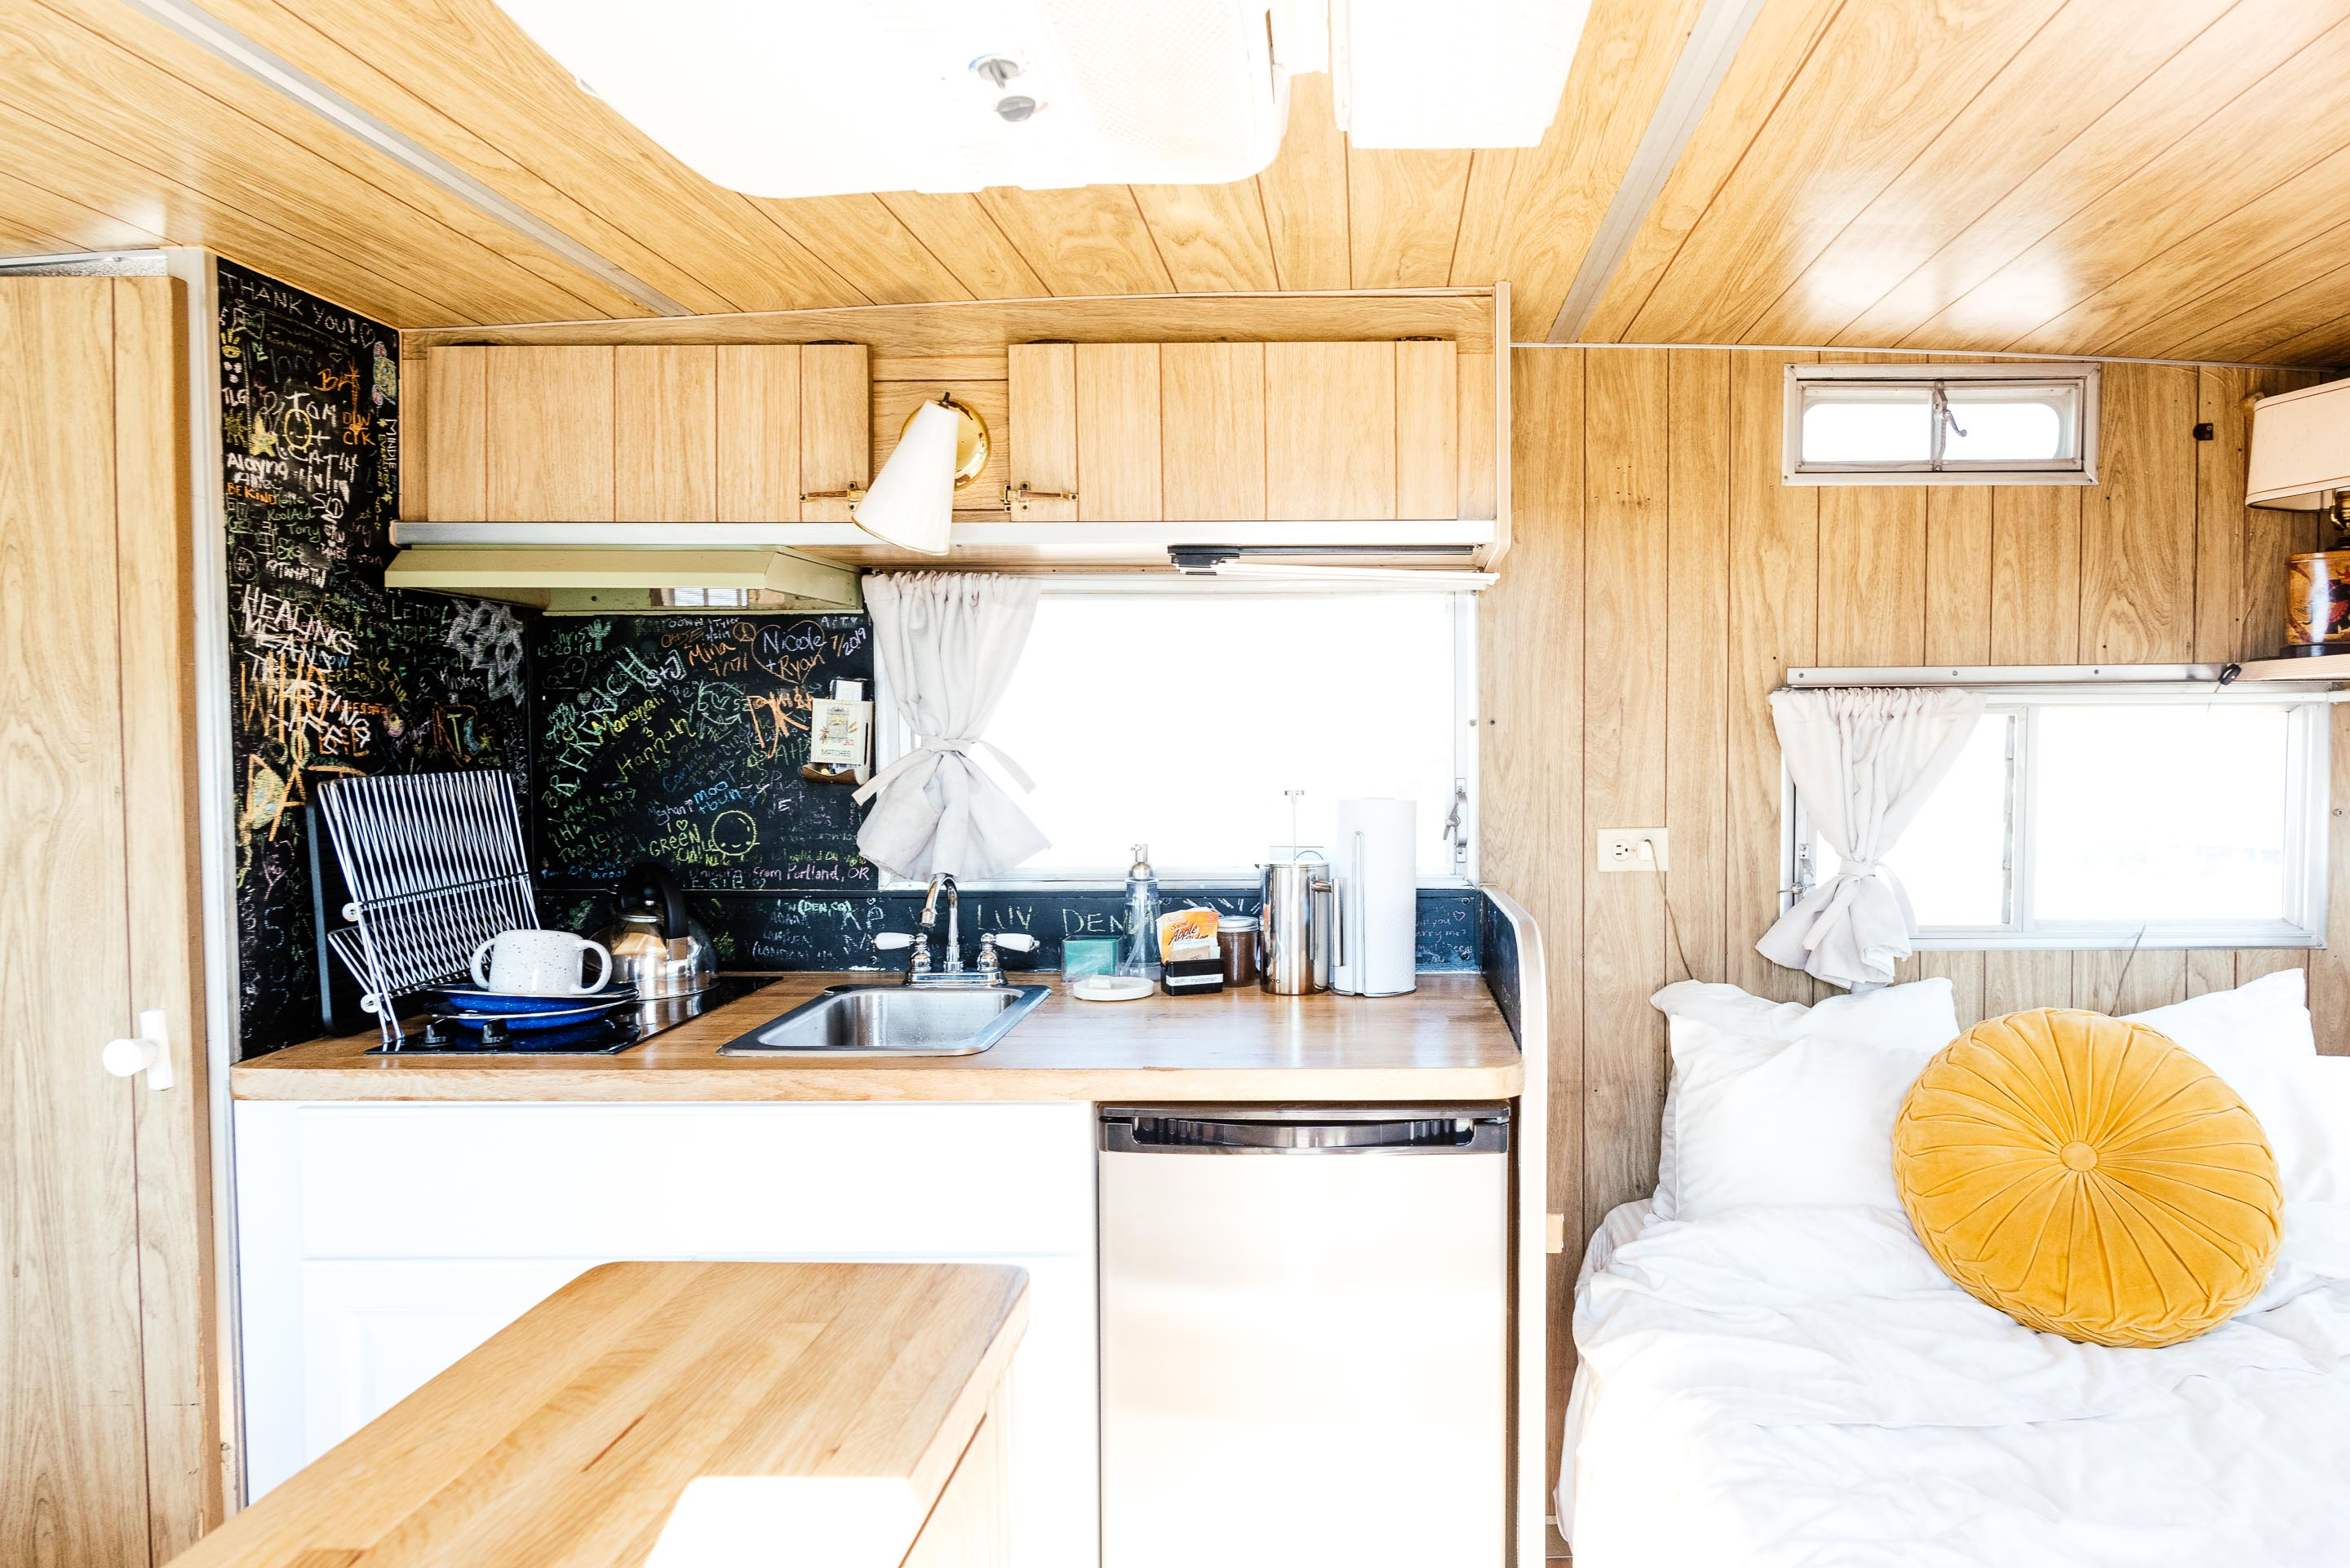 Vintage Trailer Hotels: The Better-Than-Glamping Camping Experience You Never Knew You Loved